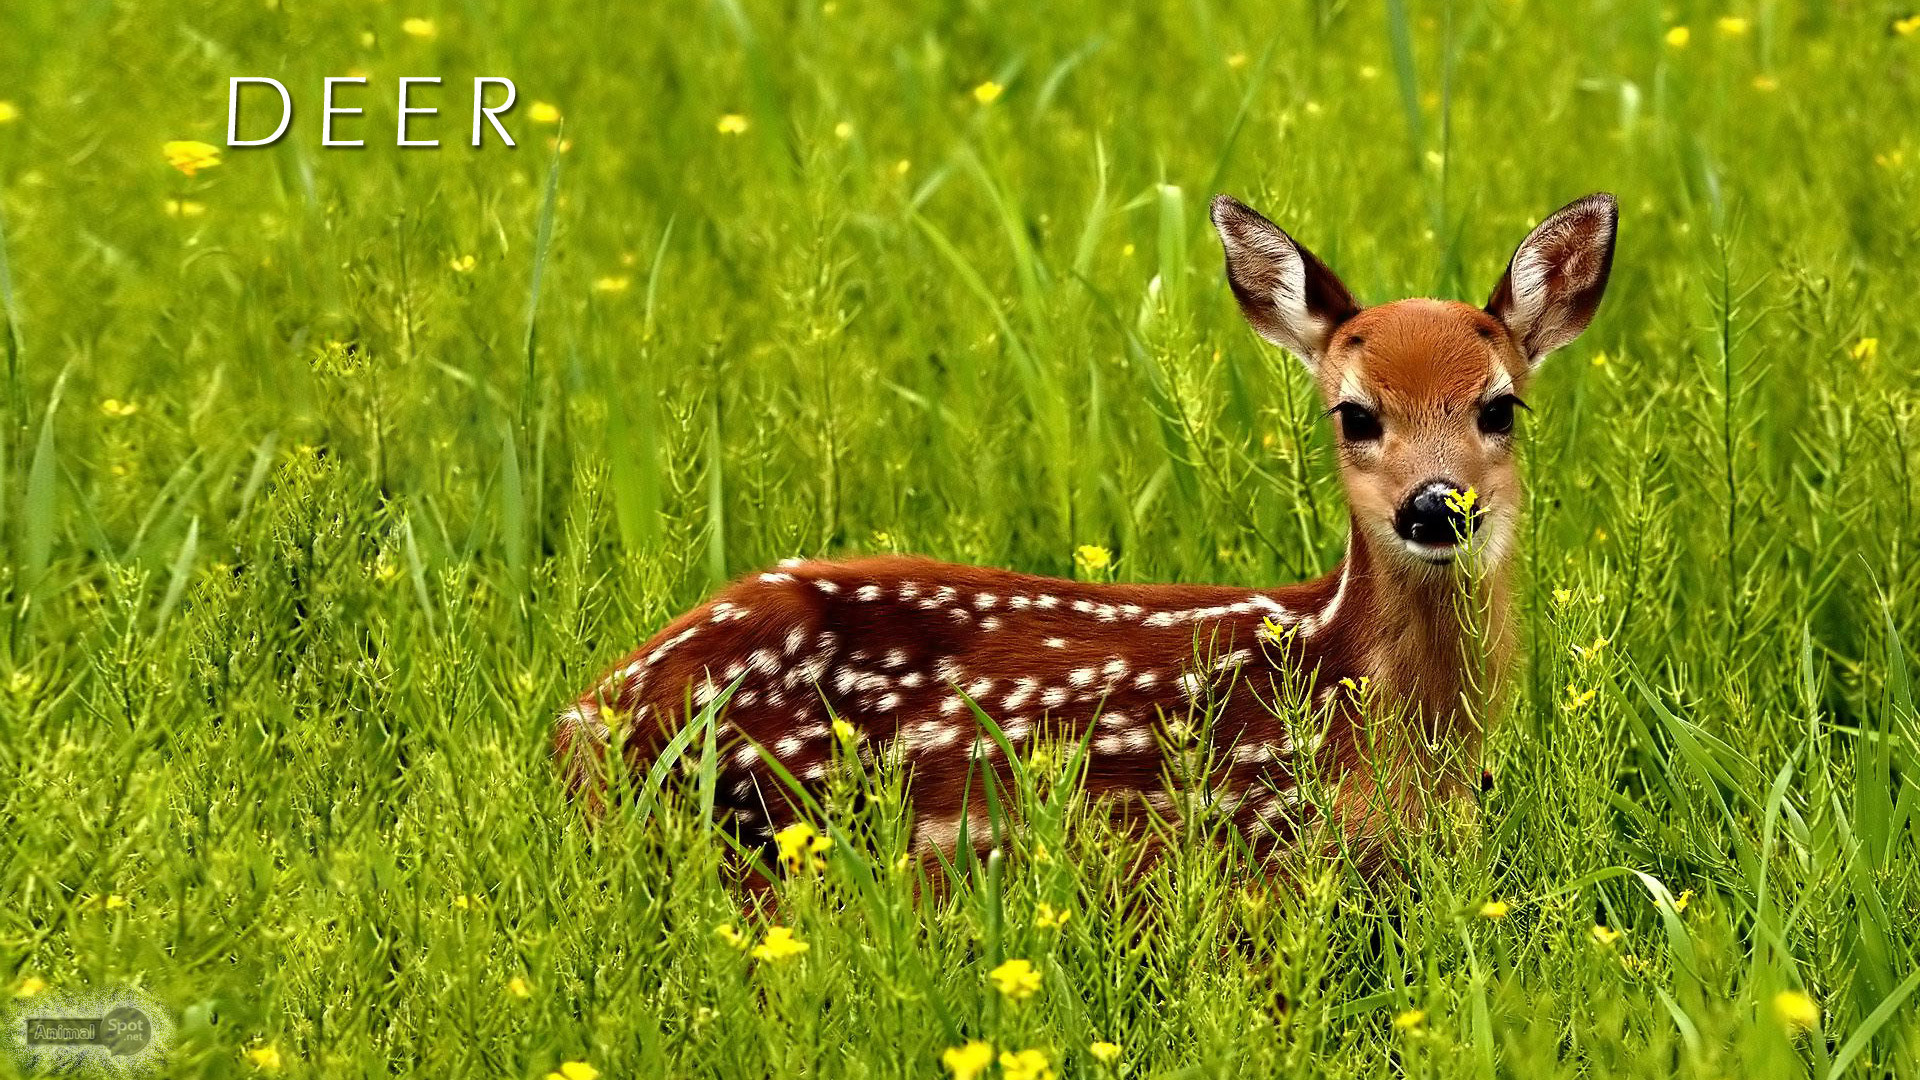 Res: 1920x1080, Deer Wallpapers